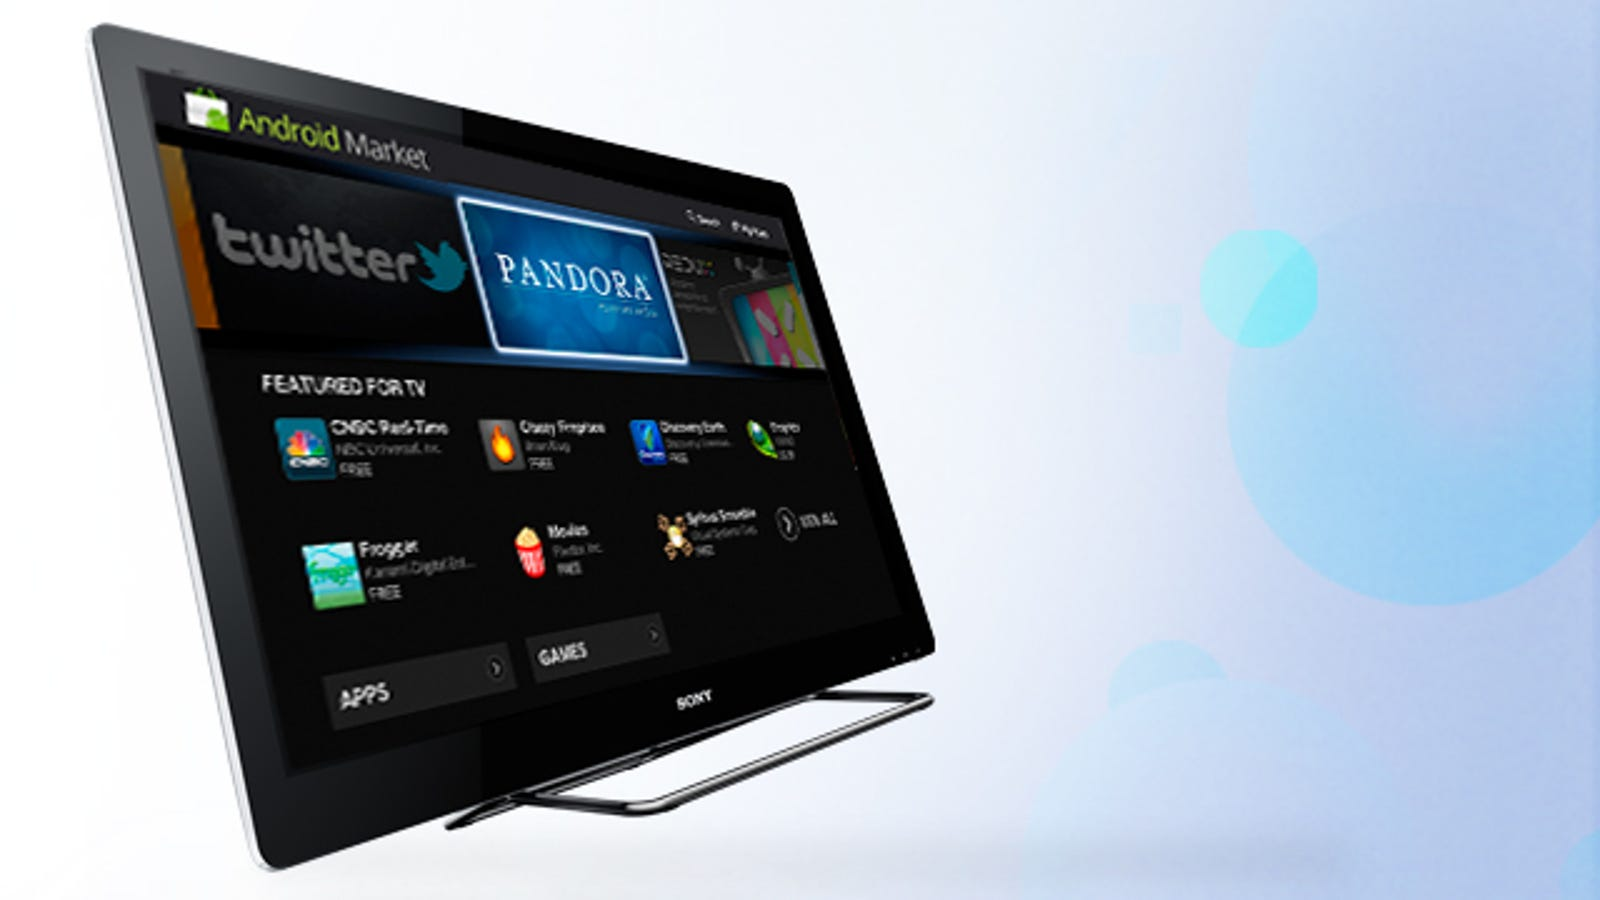 Sony Internet TV Brings Made-for-TV Apps Into Your Living Room